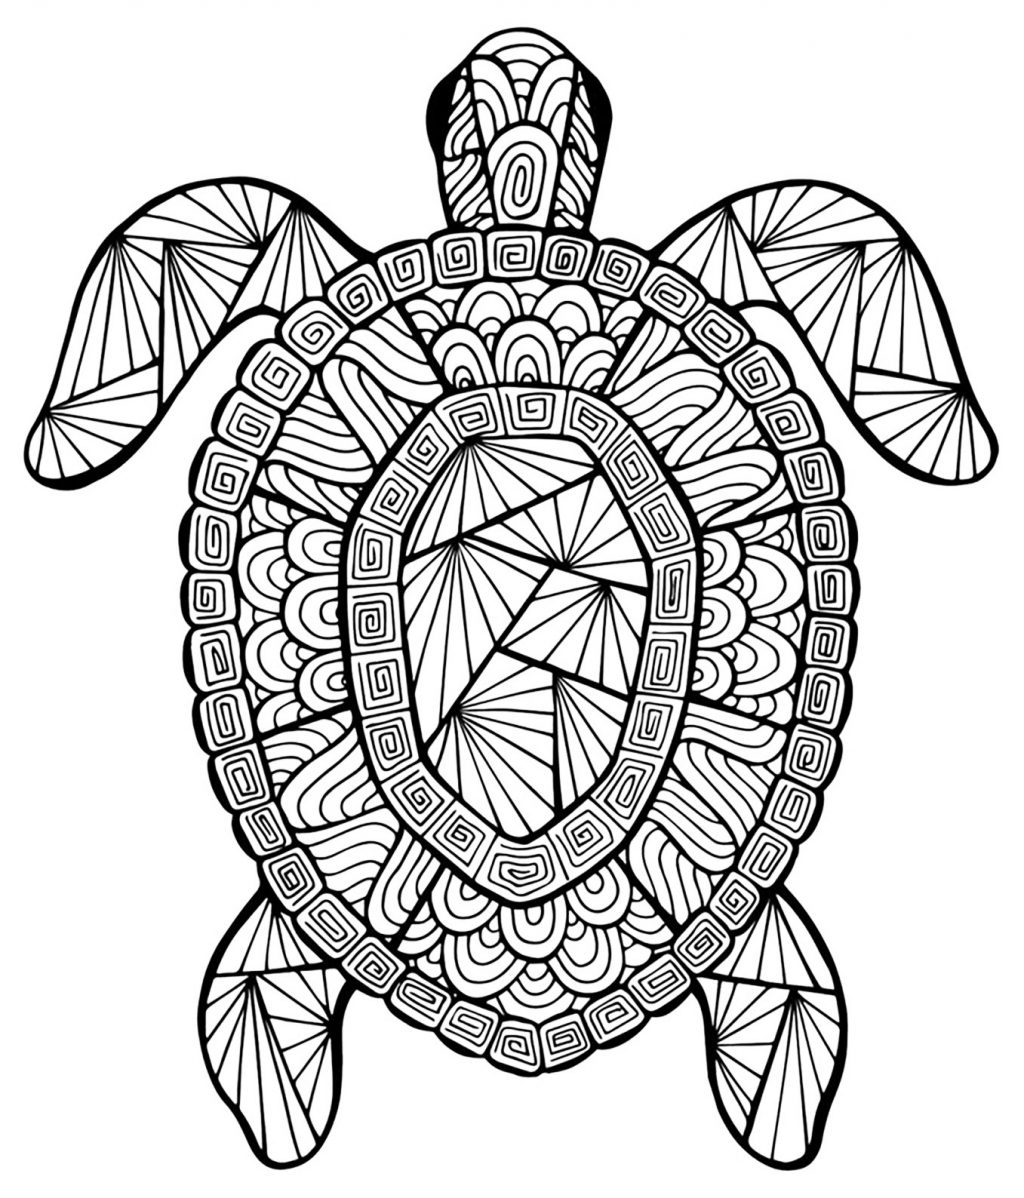 1024x1198 Coloring Pages Baby Ocean Animals Coloring